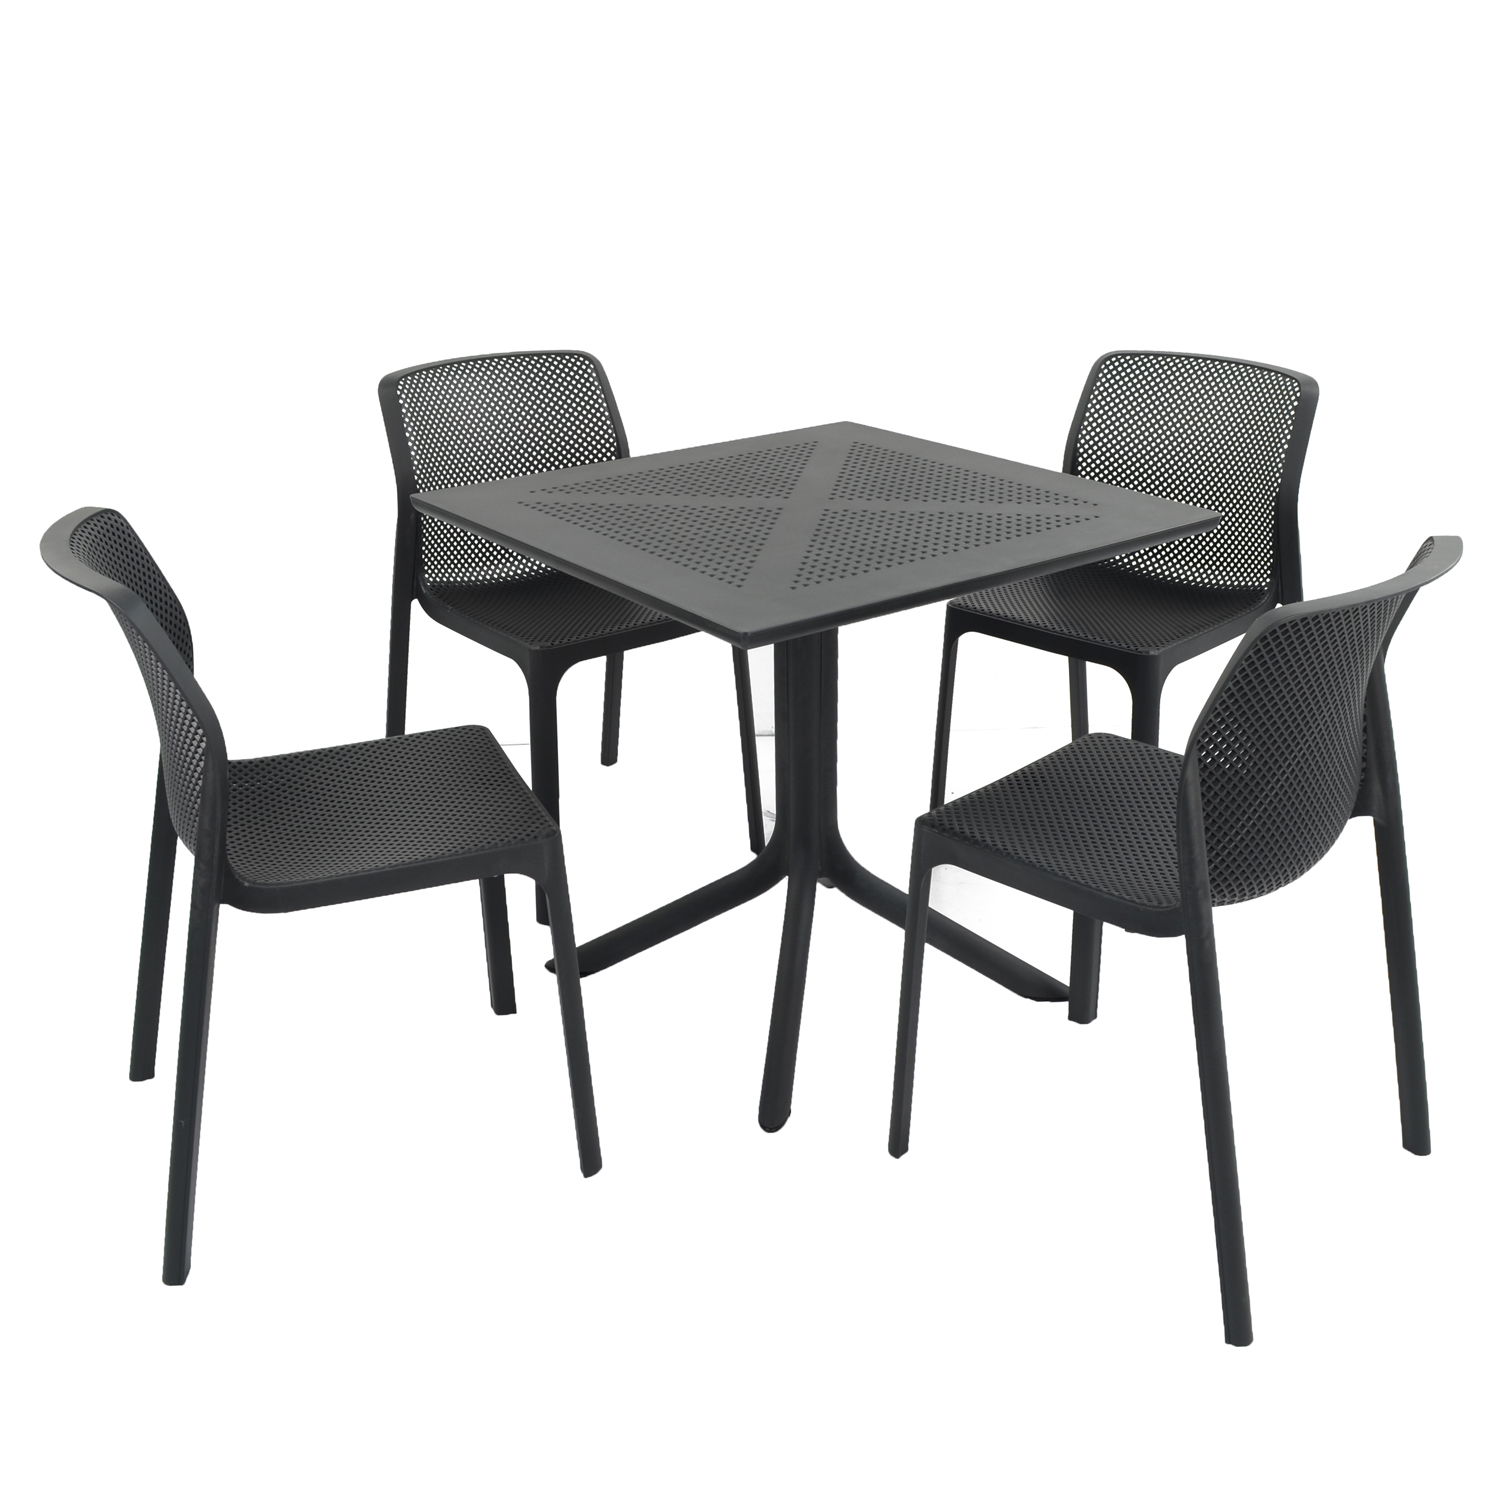 CLIP DINING TABLE WITH 4 BIT CHAIR SET ANTHRACITE WG1